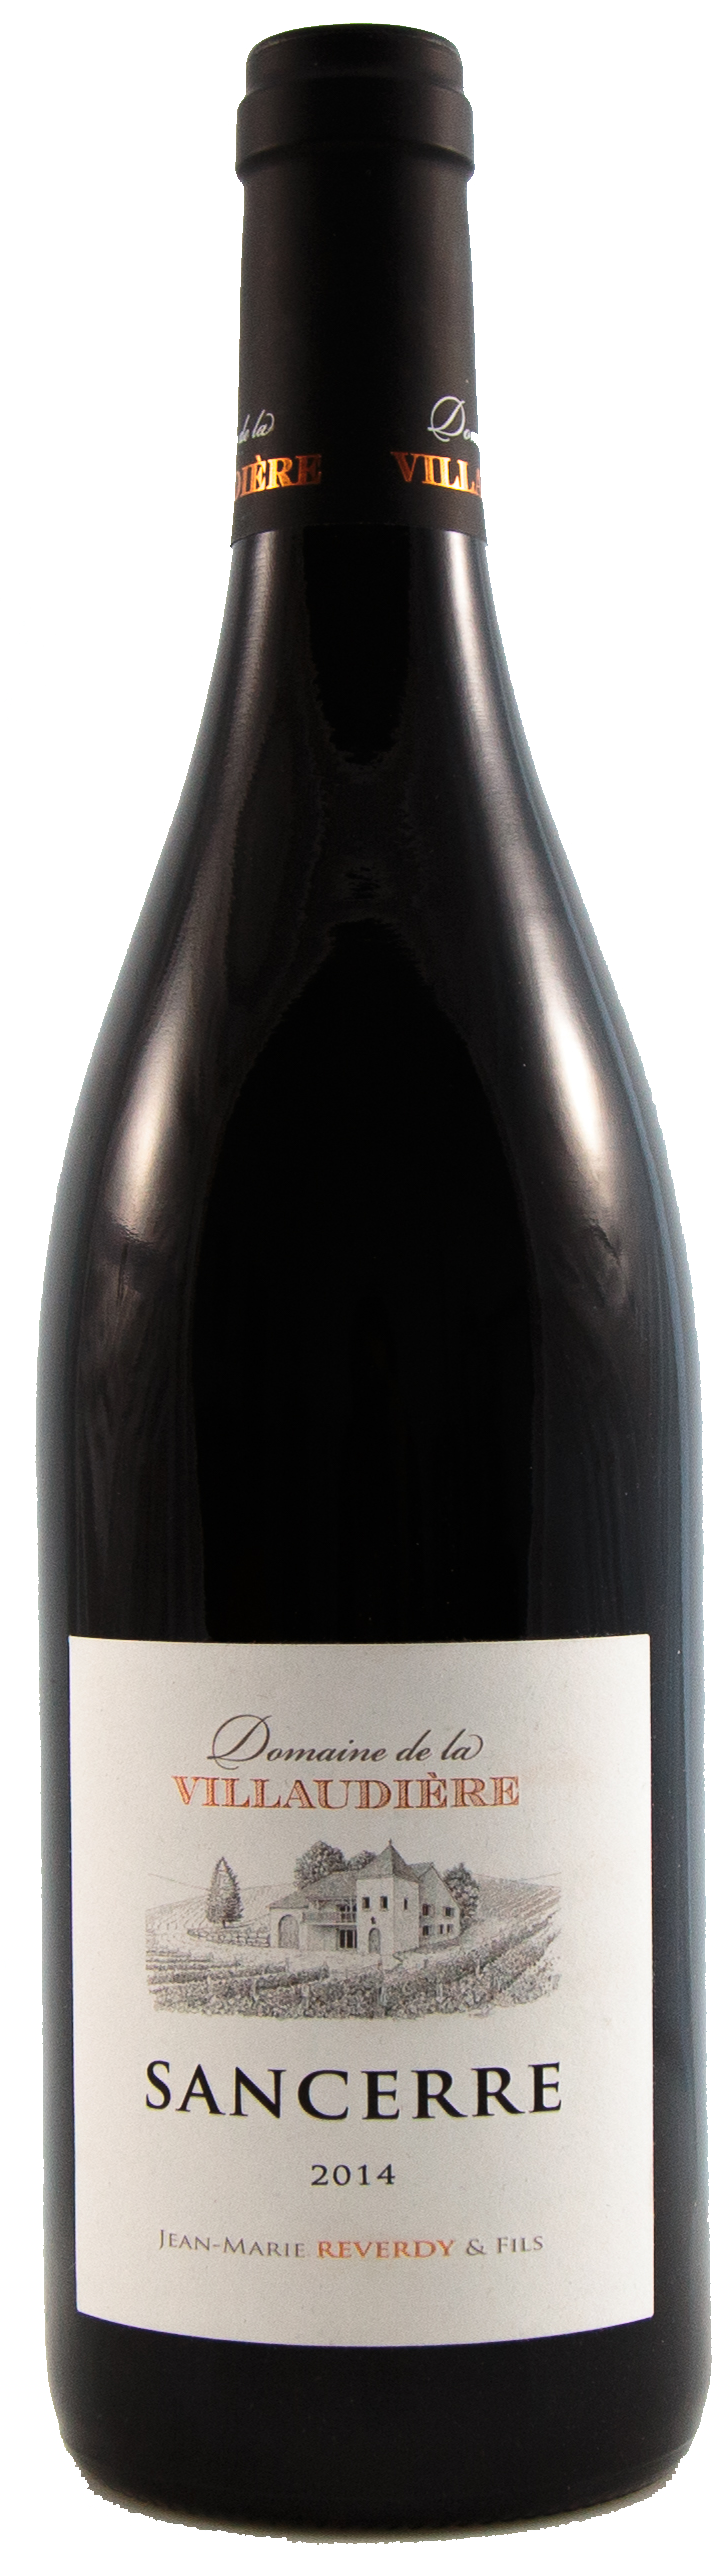 Villaudiere Sancerre AOC Red 2014